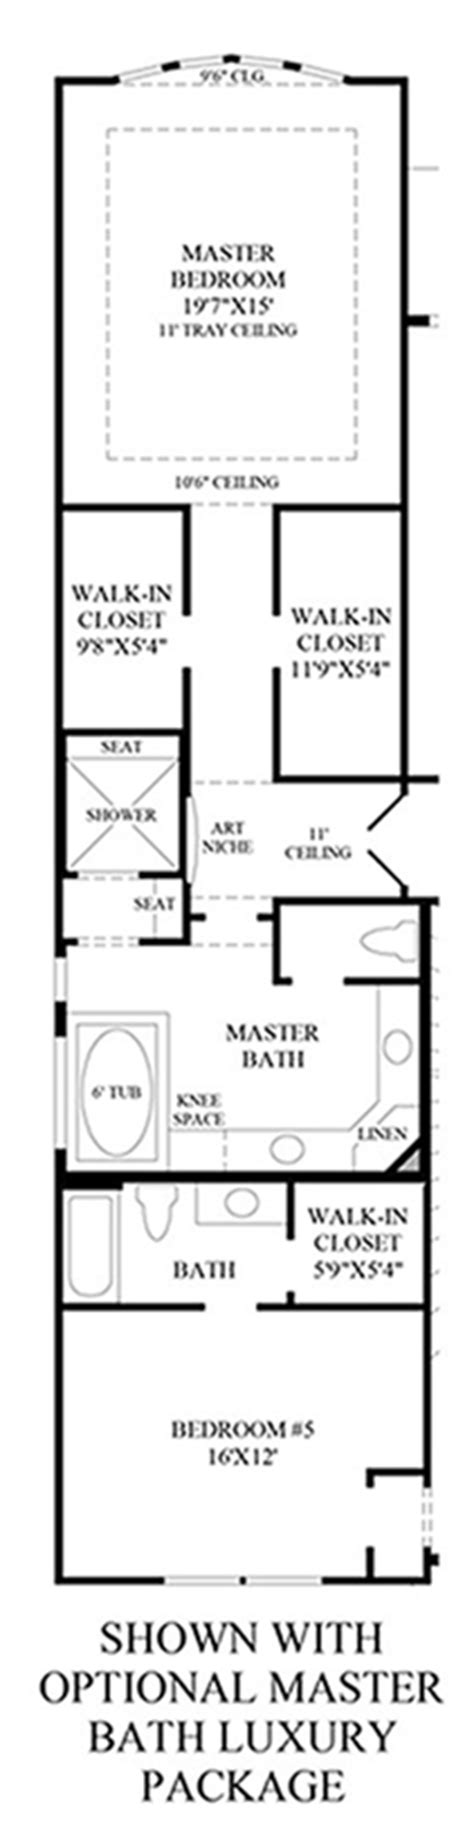 Luxury Master Bathroom Floor Plans The Reserve At Katy The Venetian Home Design